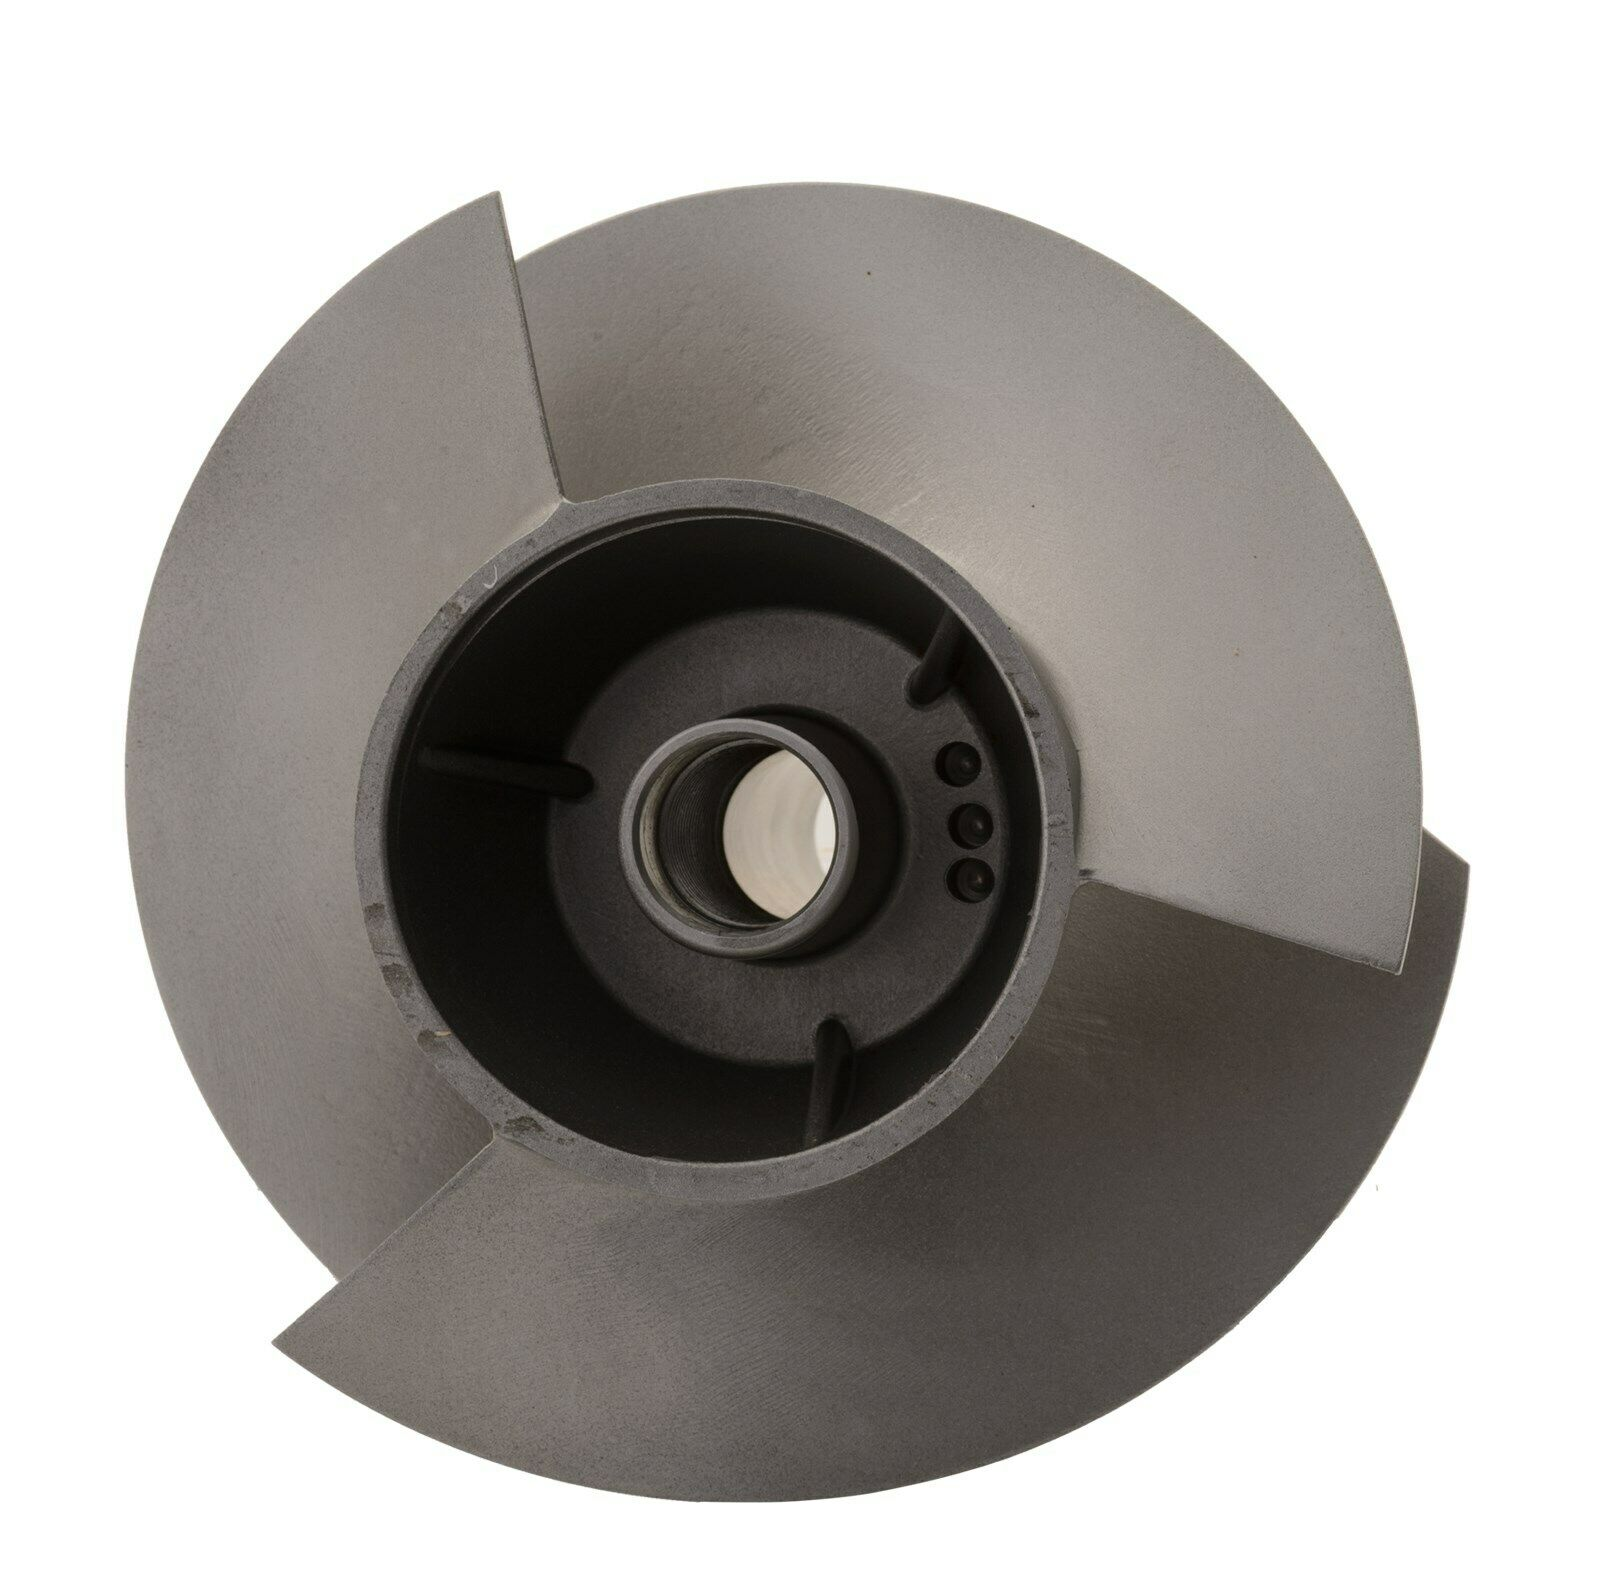 OEM No. 6EV-R1321-00-00 Stainless Steel Impeller for Yamaha Jet Ski GP1800